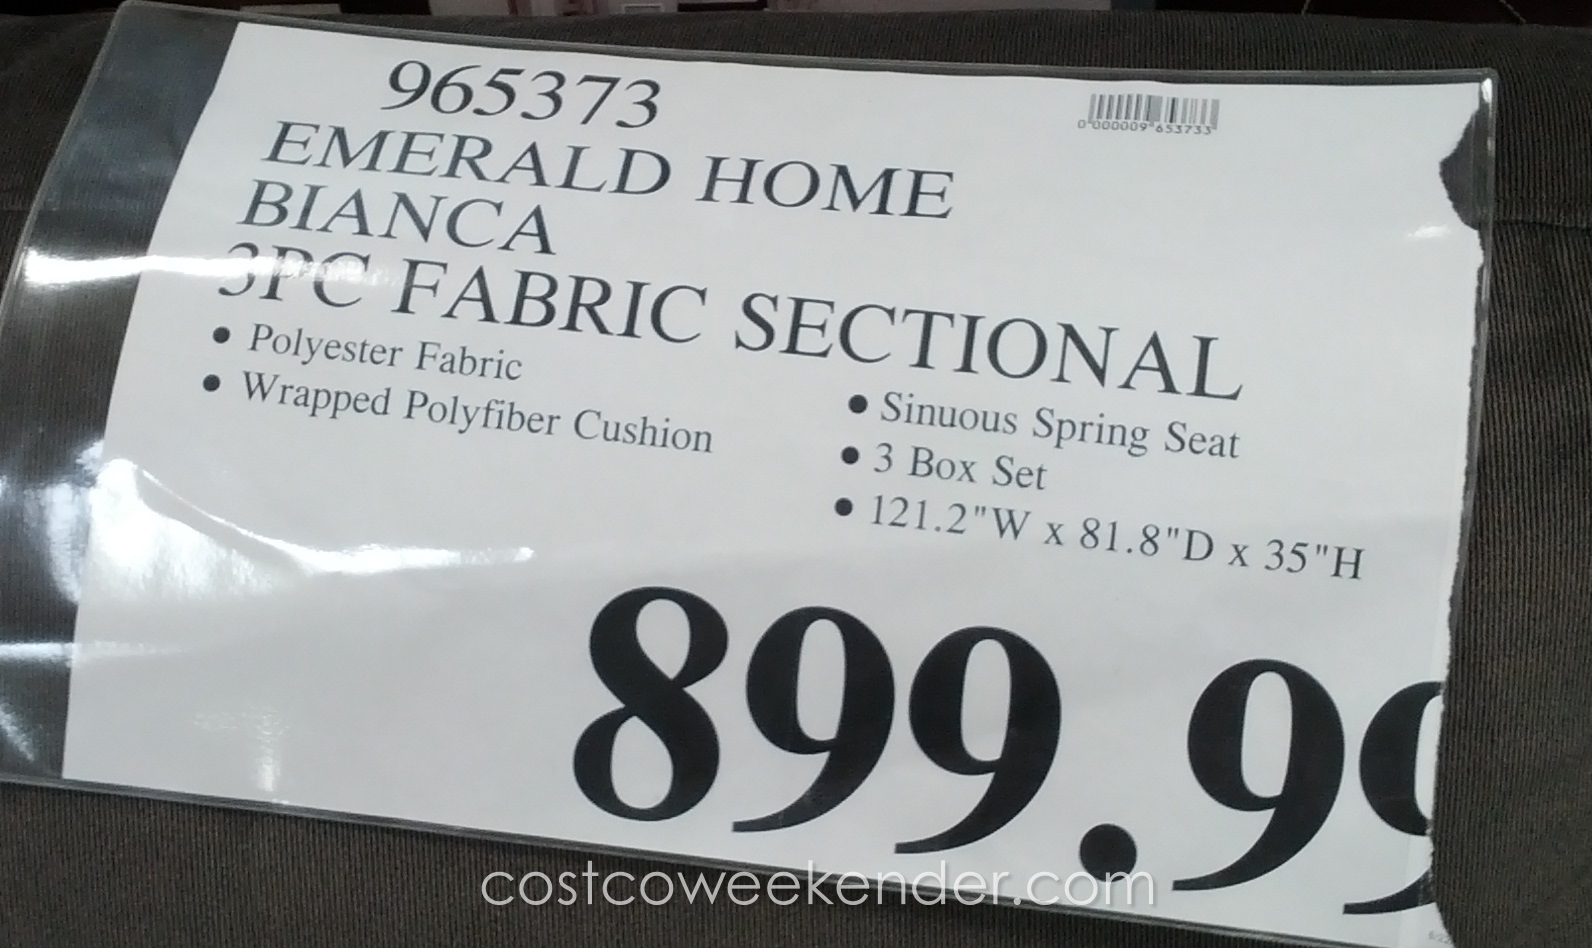 bianca sectional sofa costco beds sydney nsw emerald home furnishings 3 piece set